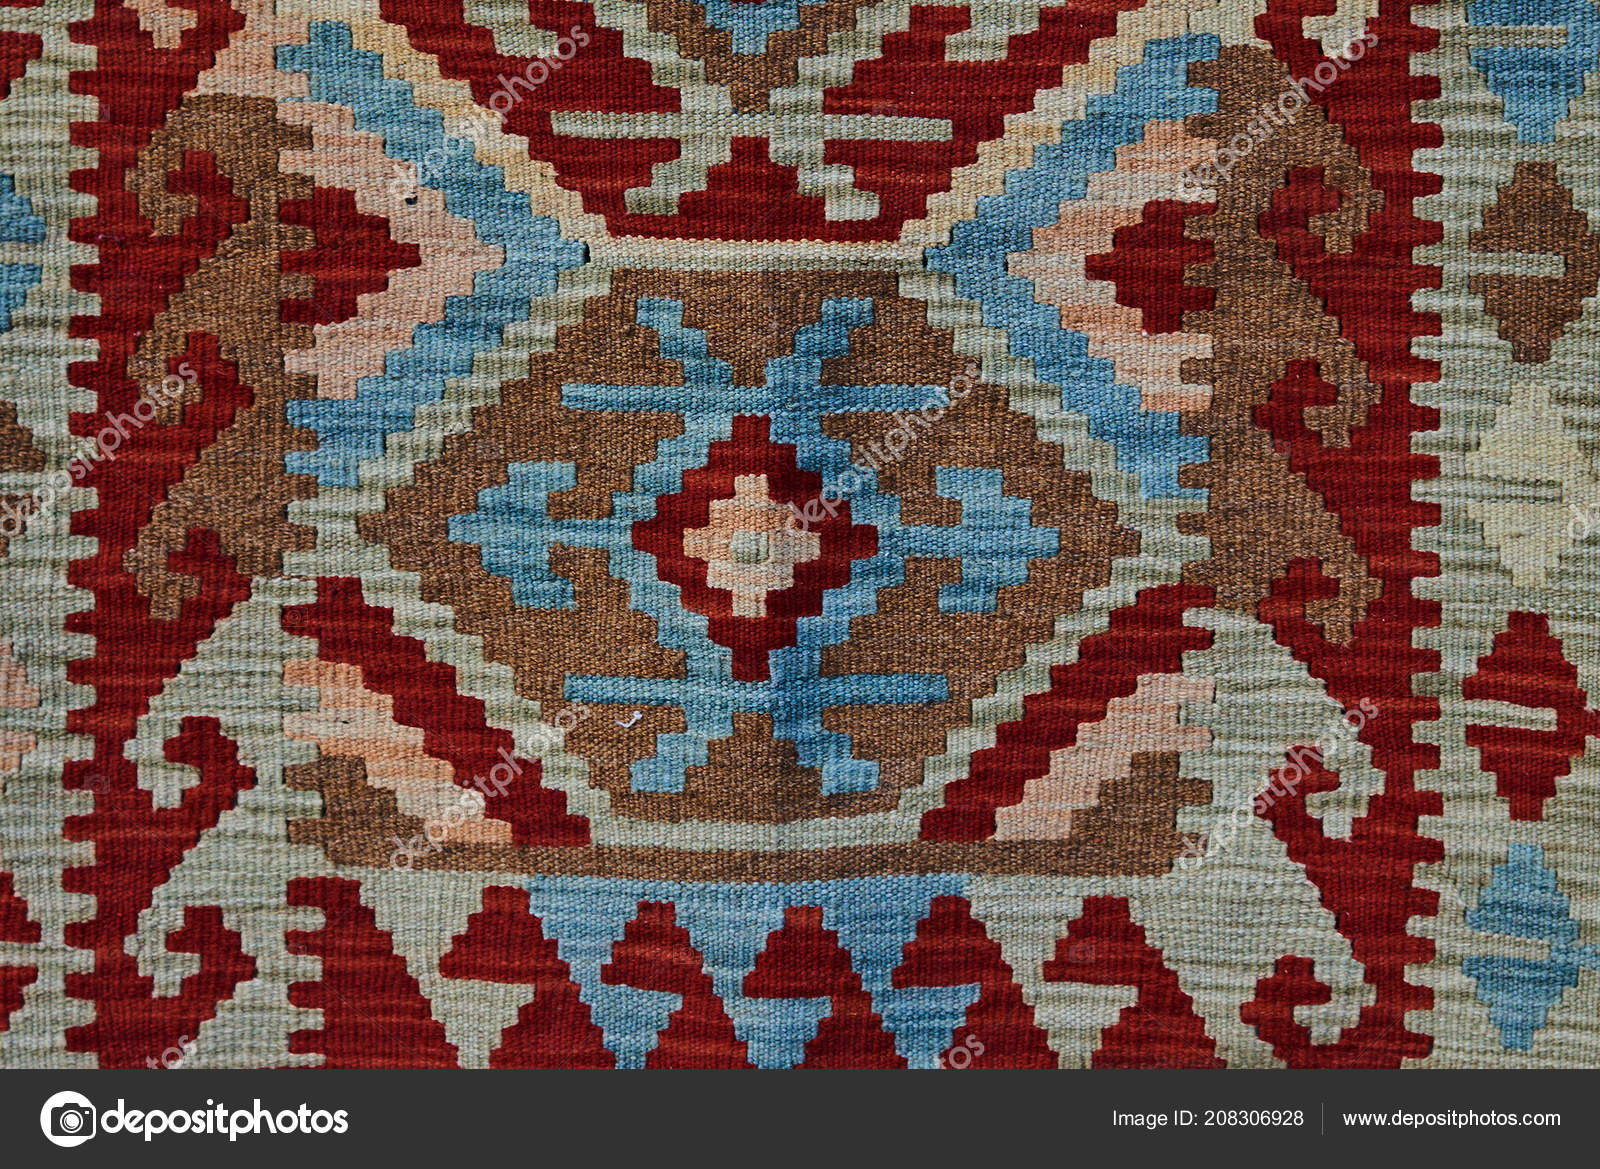 Patterned Carpet Close Geometric Patterned Carpet Hand Woven Rug Red Yellow Blue